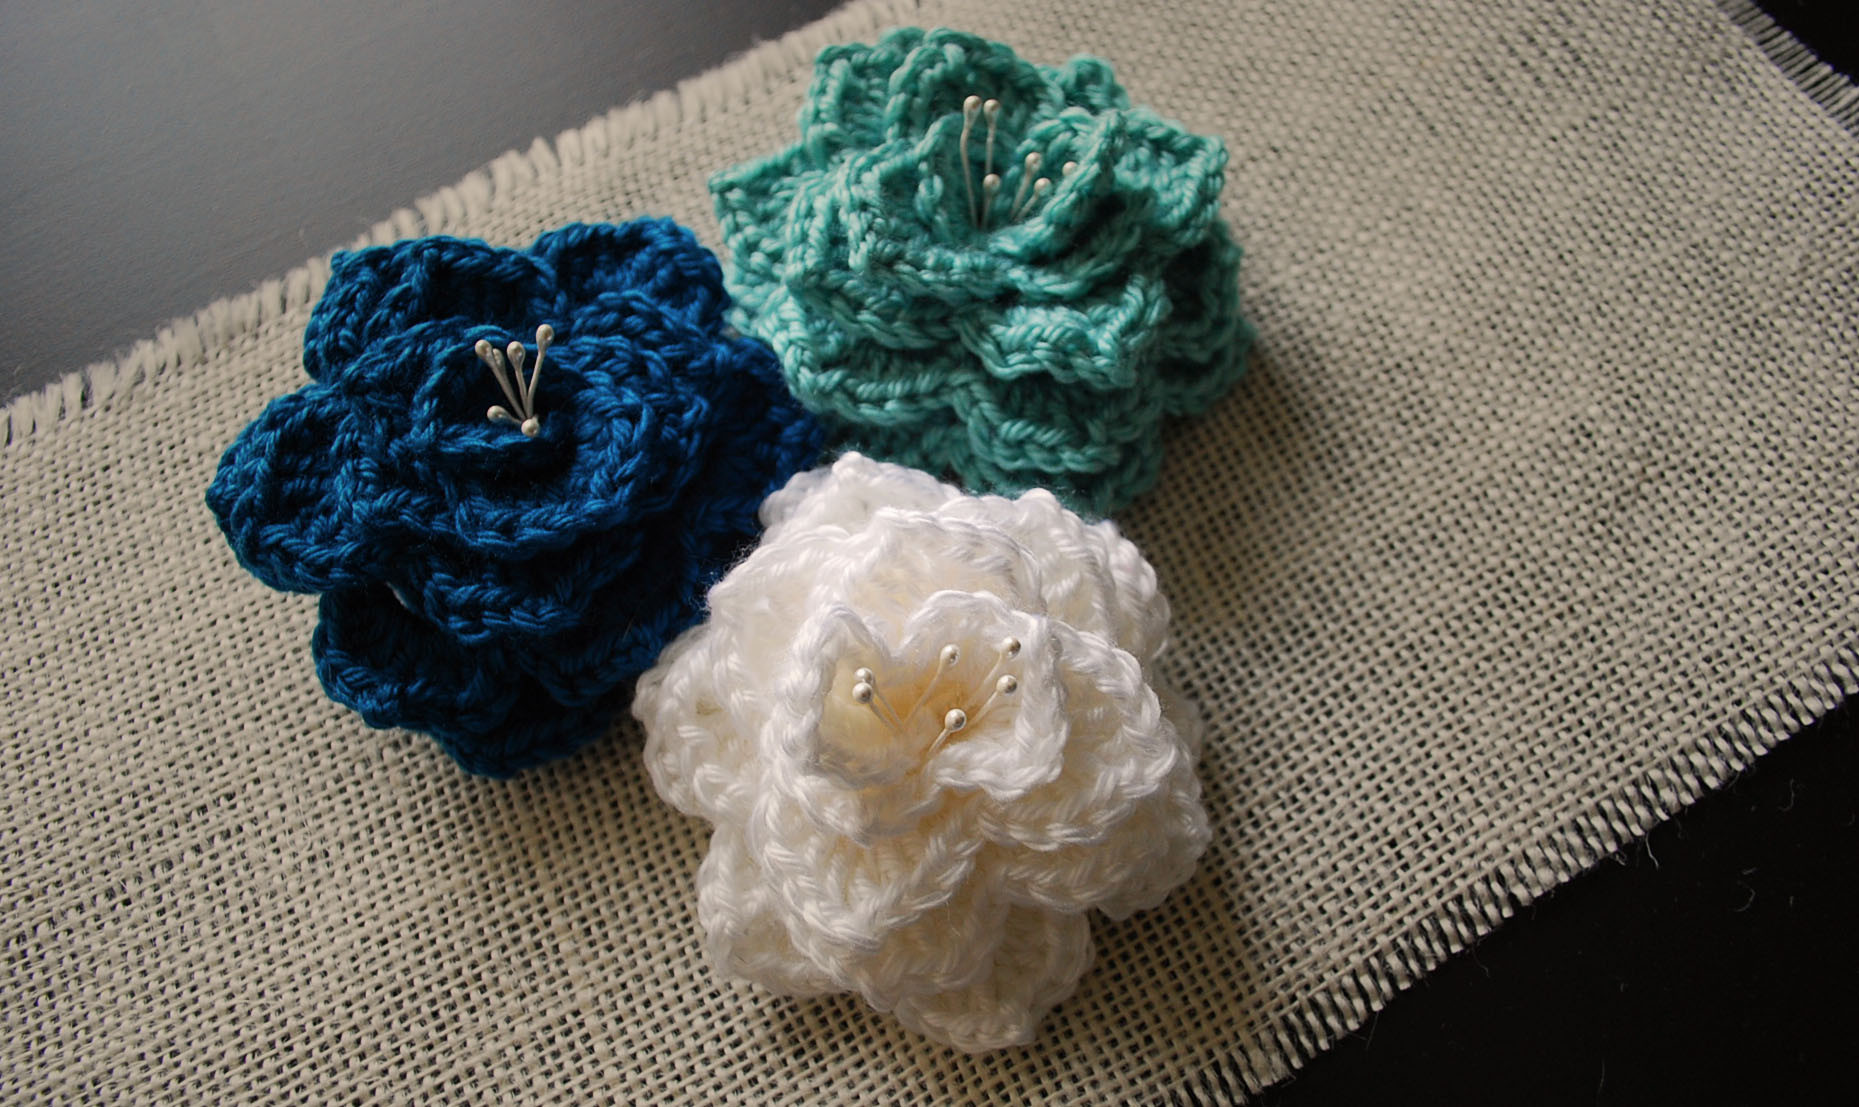 Free Crochet Flower Patterns Unique Crocodile Stitch Flower B Hooked Crochet Of Amazing 42 Images Free Crochet Flower Patterns